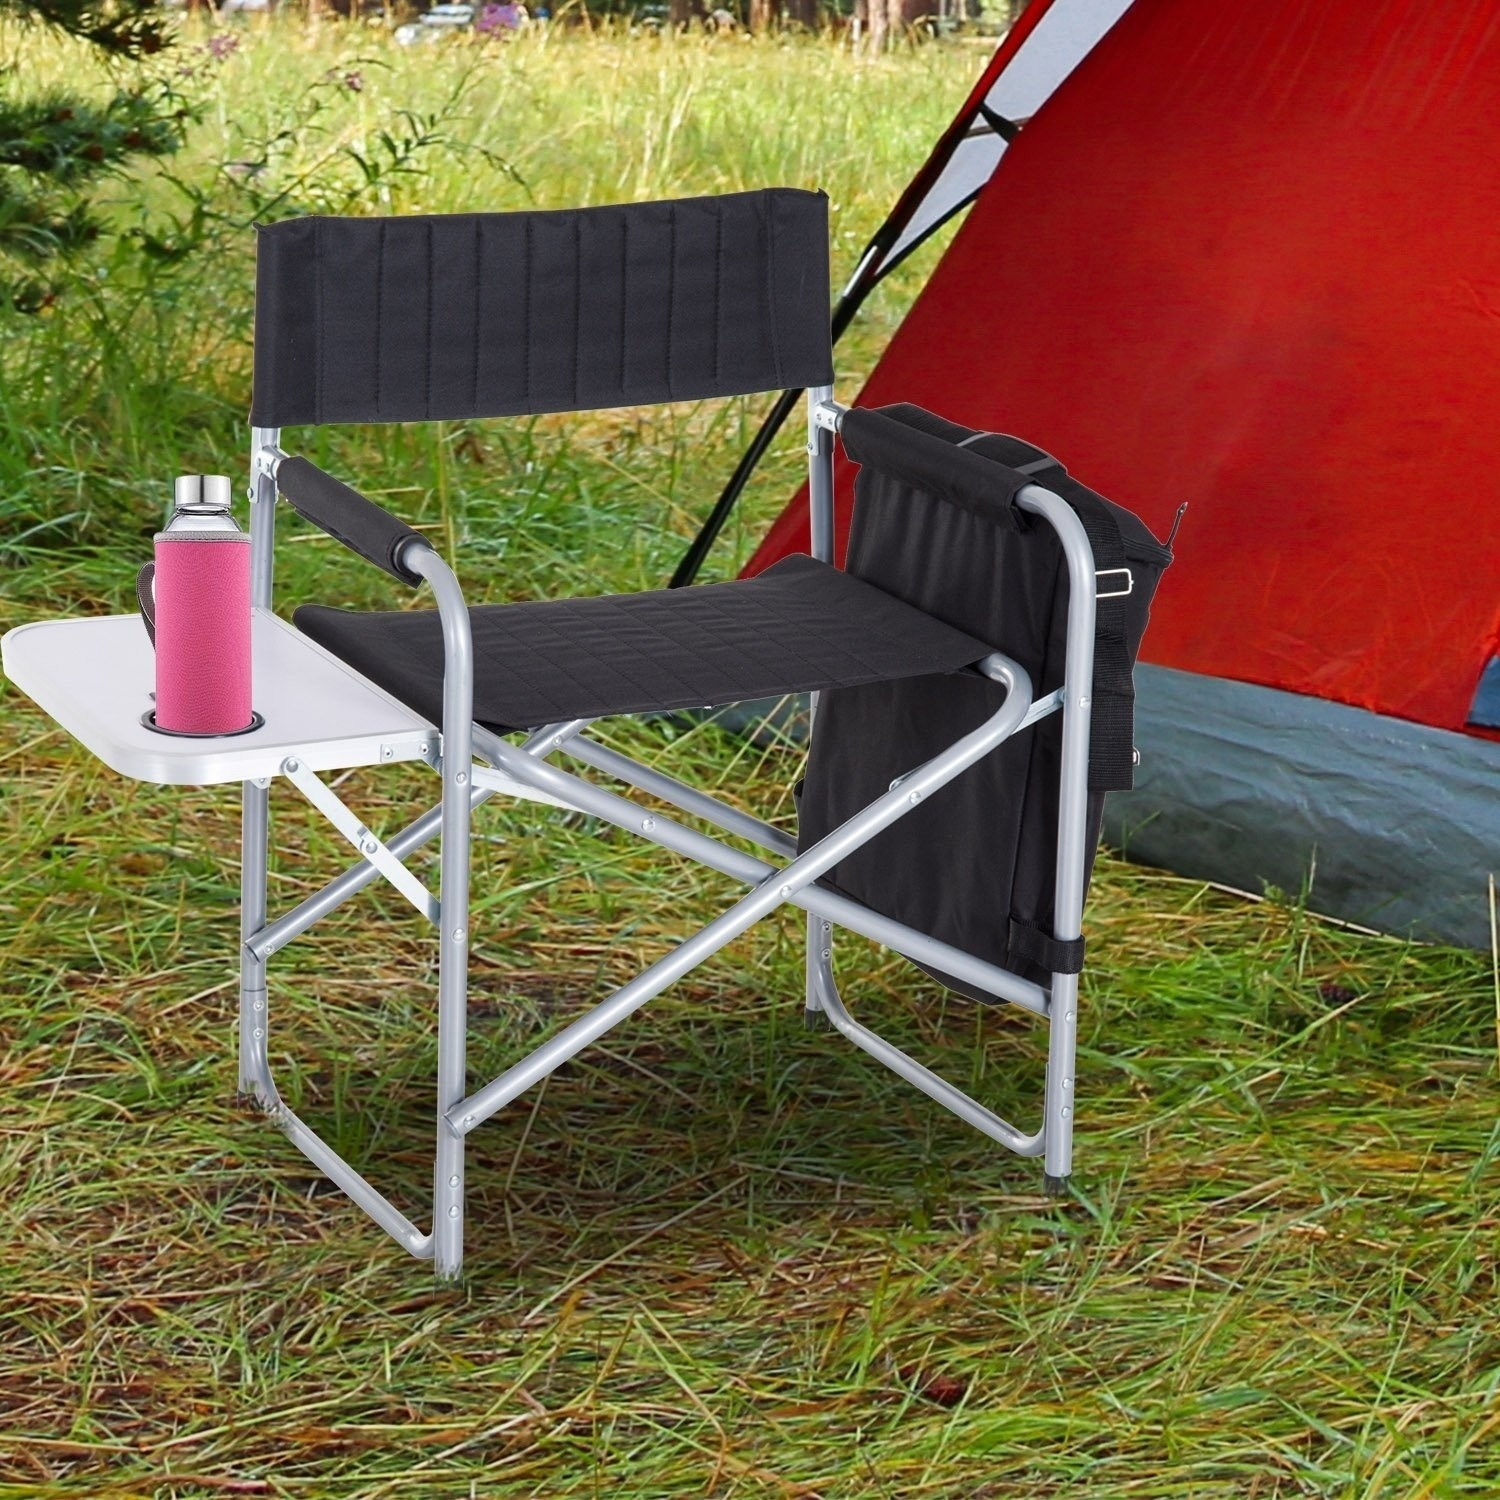 outsunny steel director folding camp chair with side table and cooler black outdoor free shipping today yellow bedside lamps glass top corner sets hampton bay pembrey ikea toy